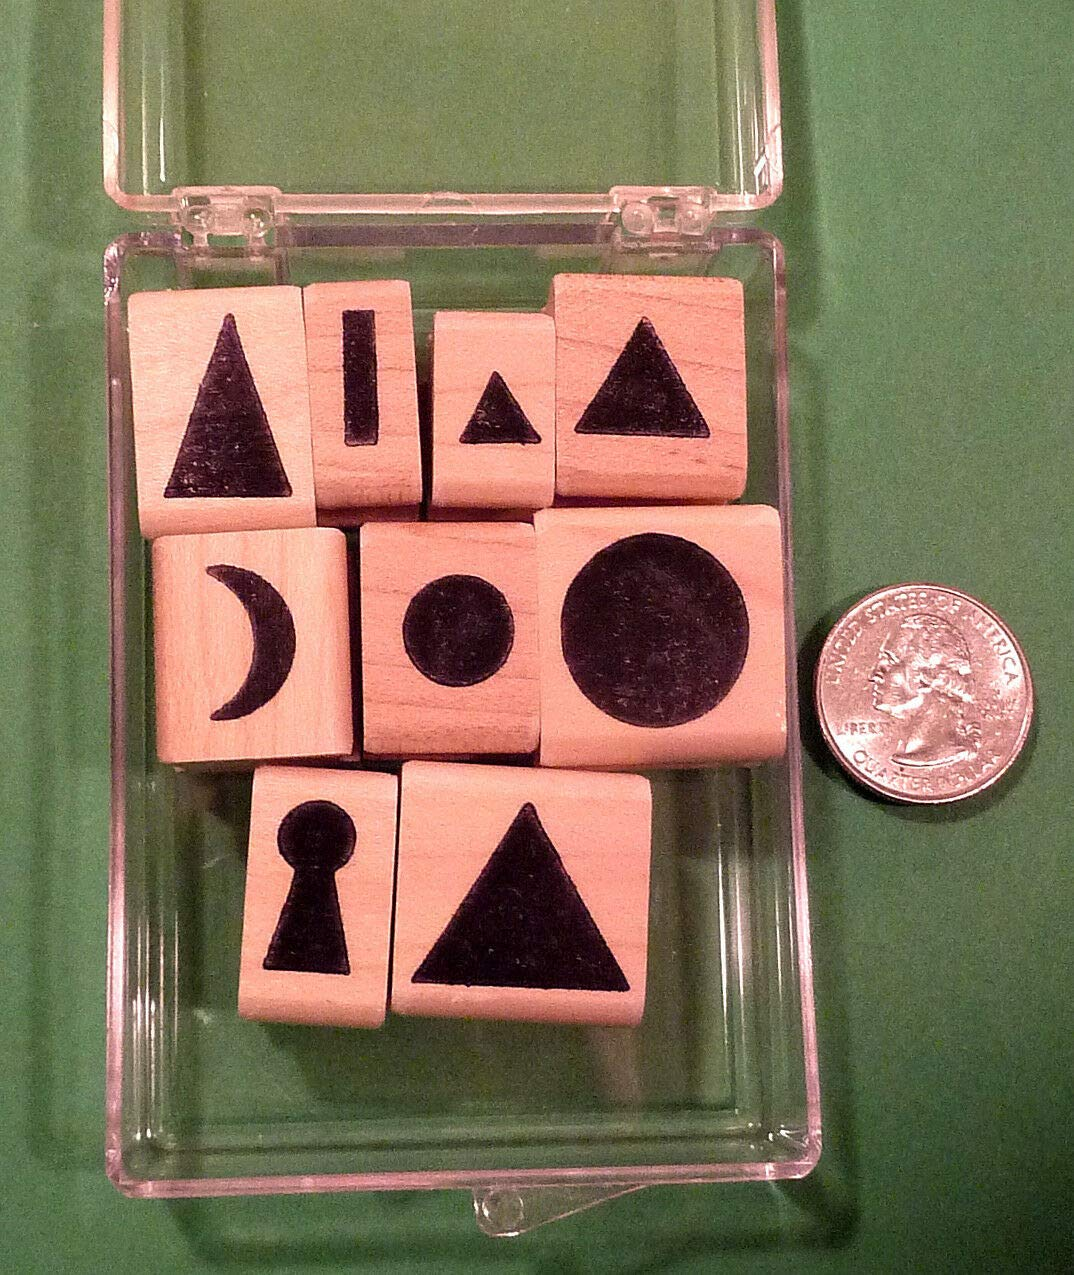 Montessori Grammar Symbols, Boxed Teacher's Set of 9 Wood Mounted Rubber Stamps - Rubber Stamp Wood Carving Blocks by Wooden Stamps